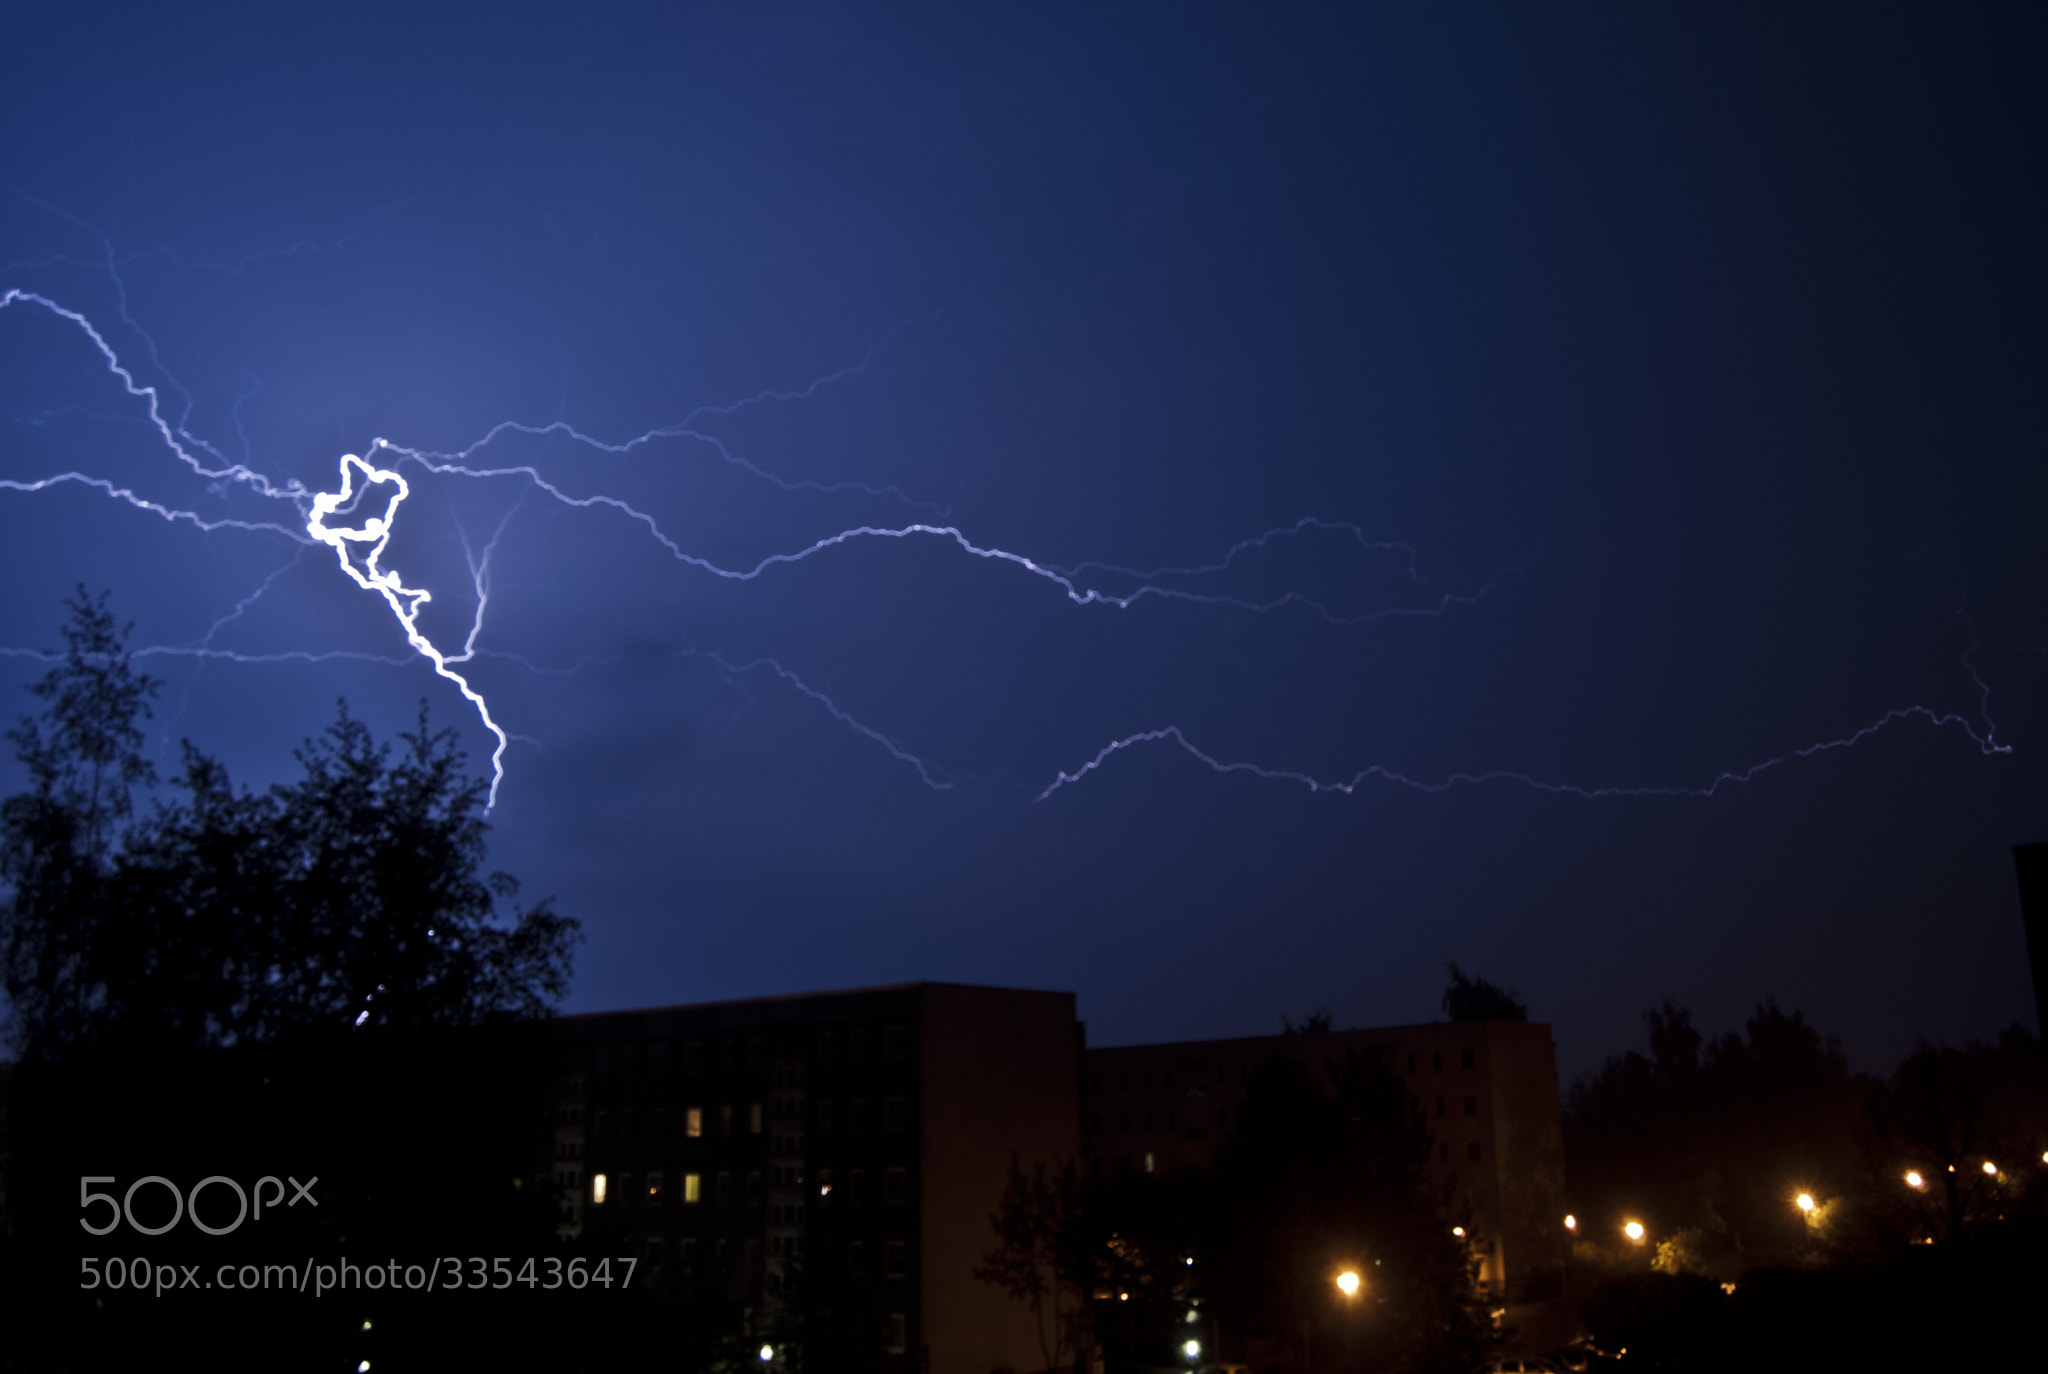 Photograph Thunderstorm in Greifswald by Javier R. R. on 500px